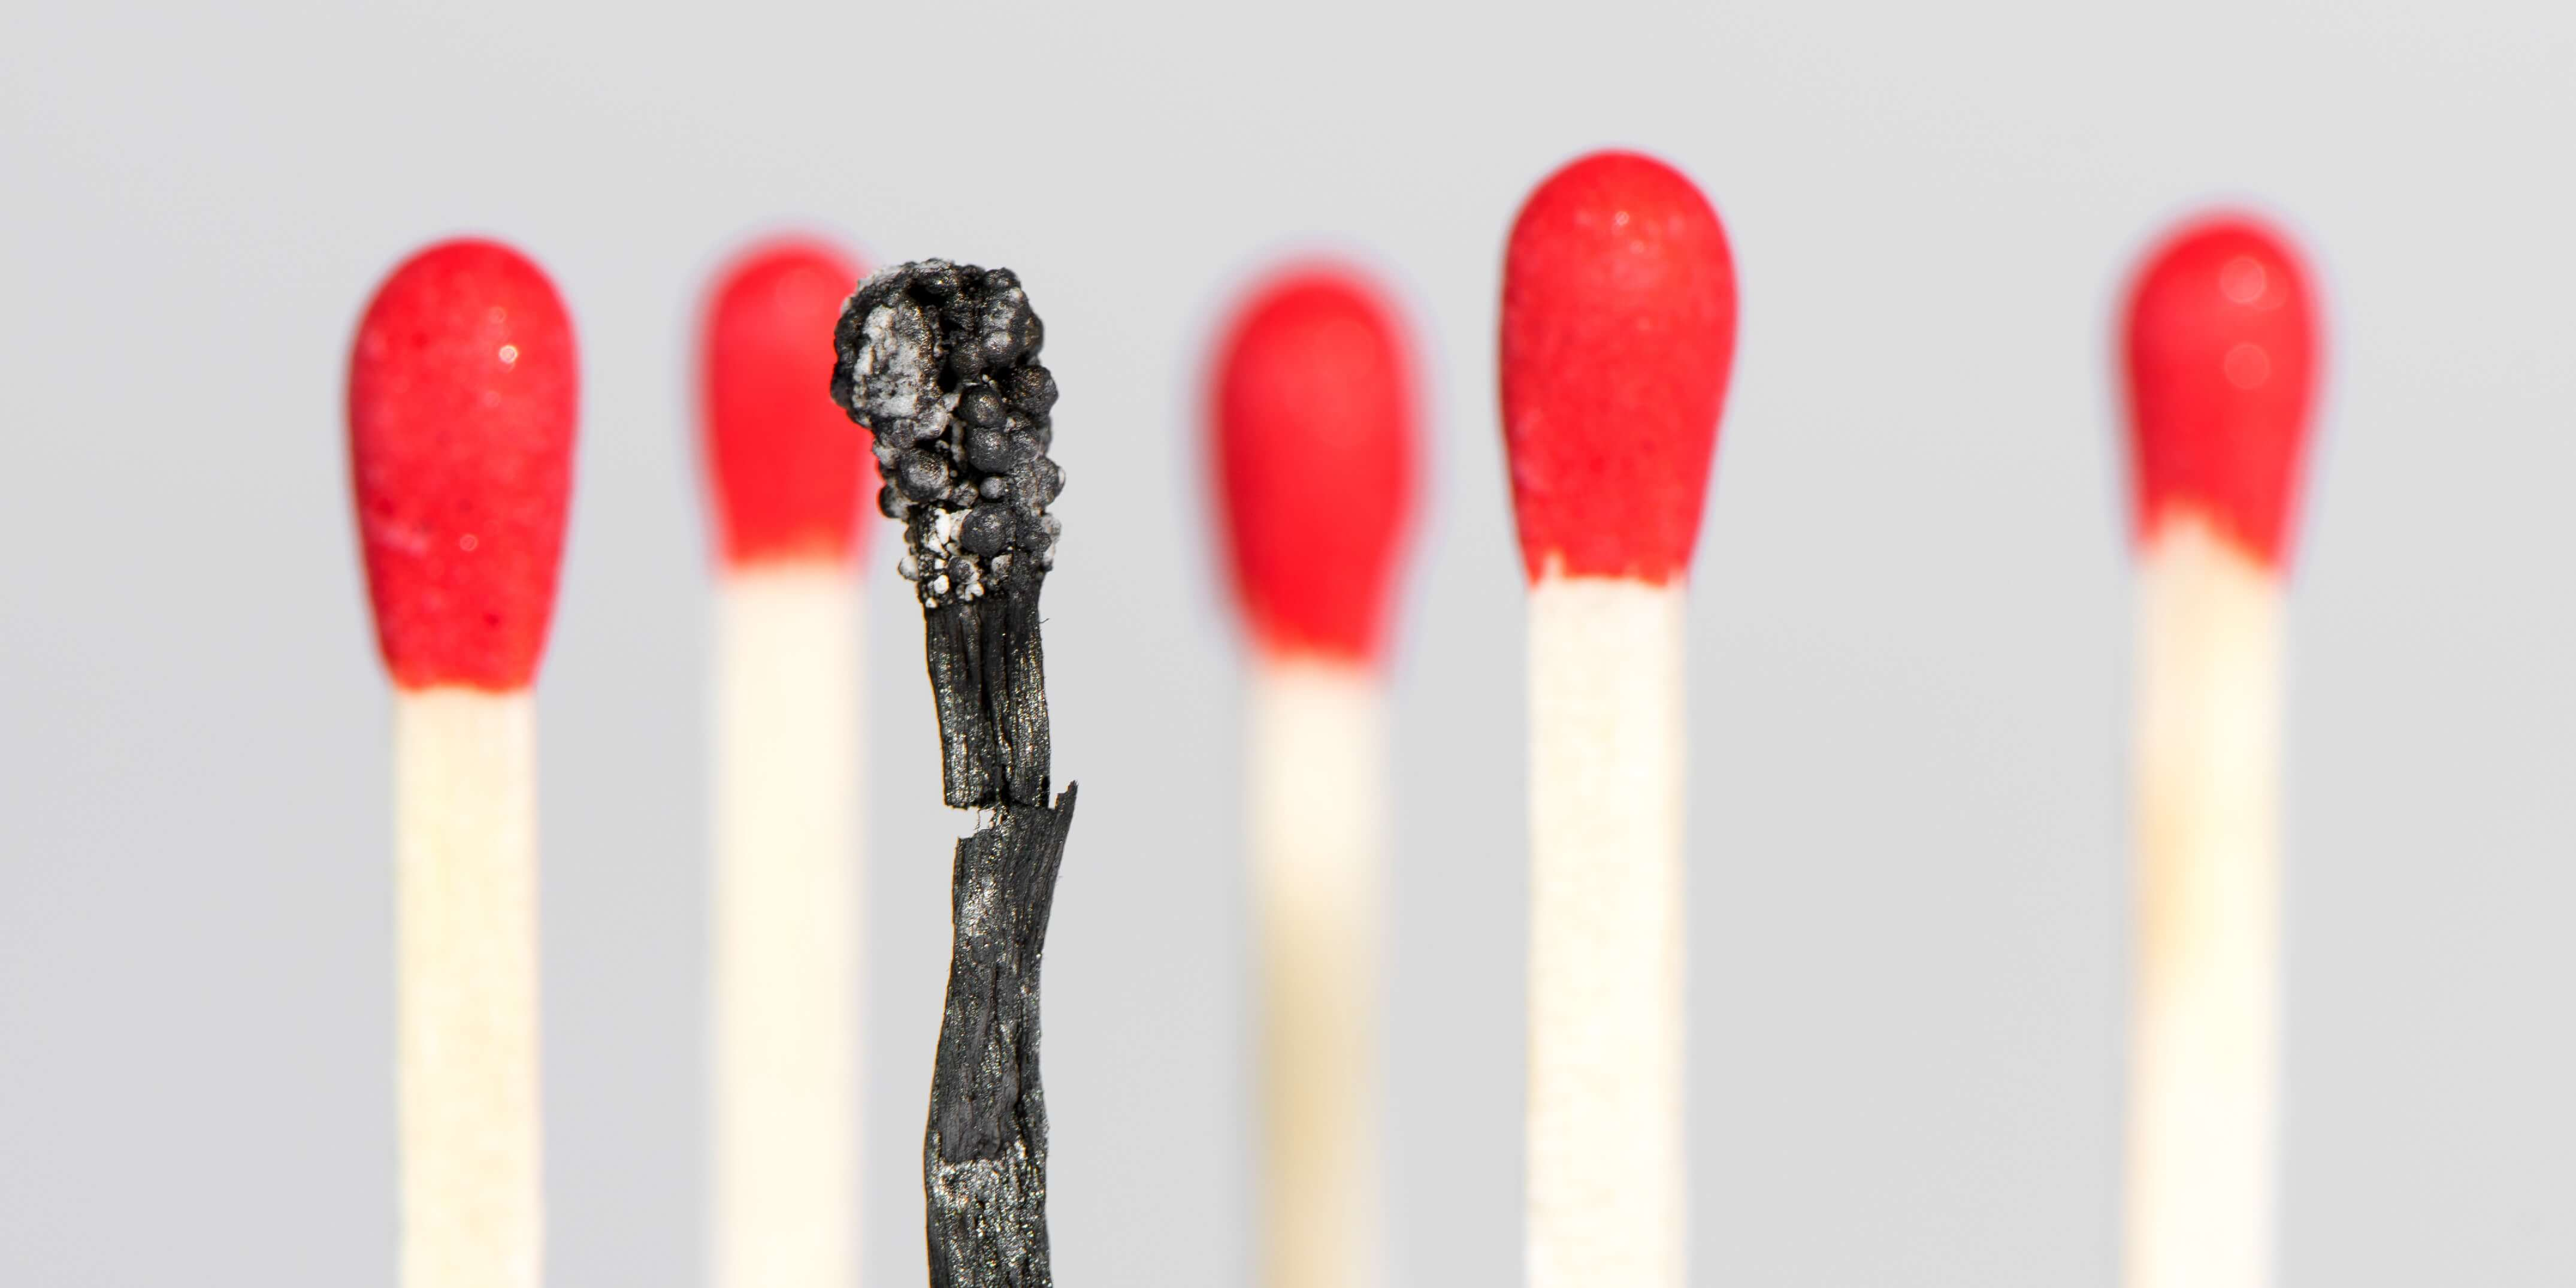 Take steps to avoid burnout before it strikes